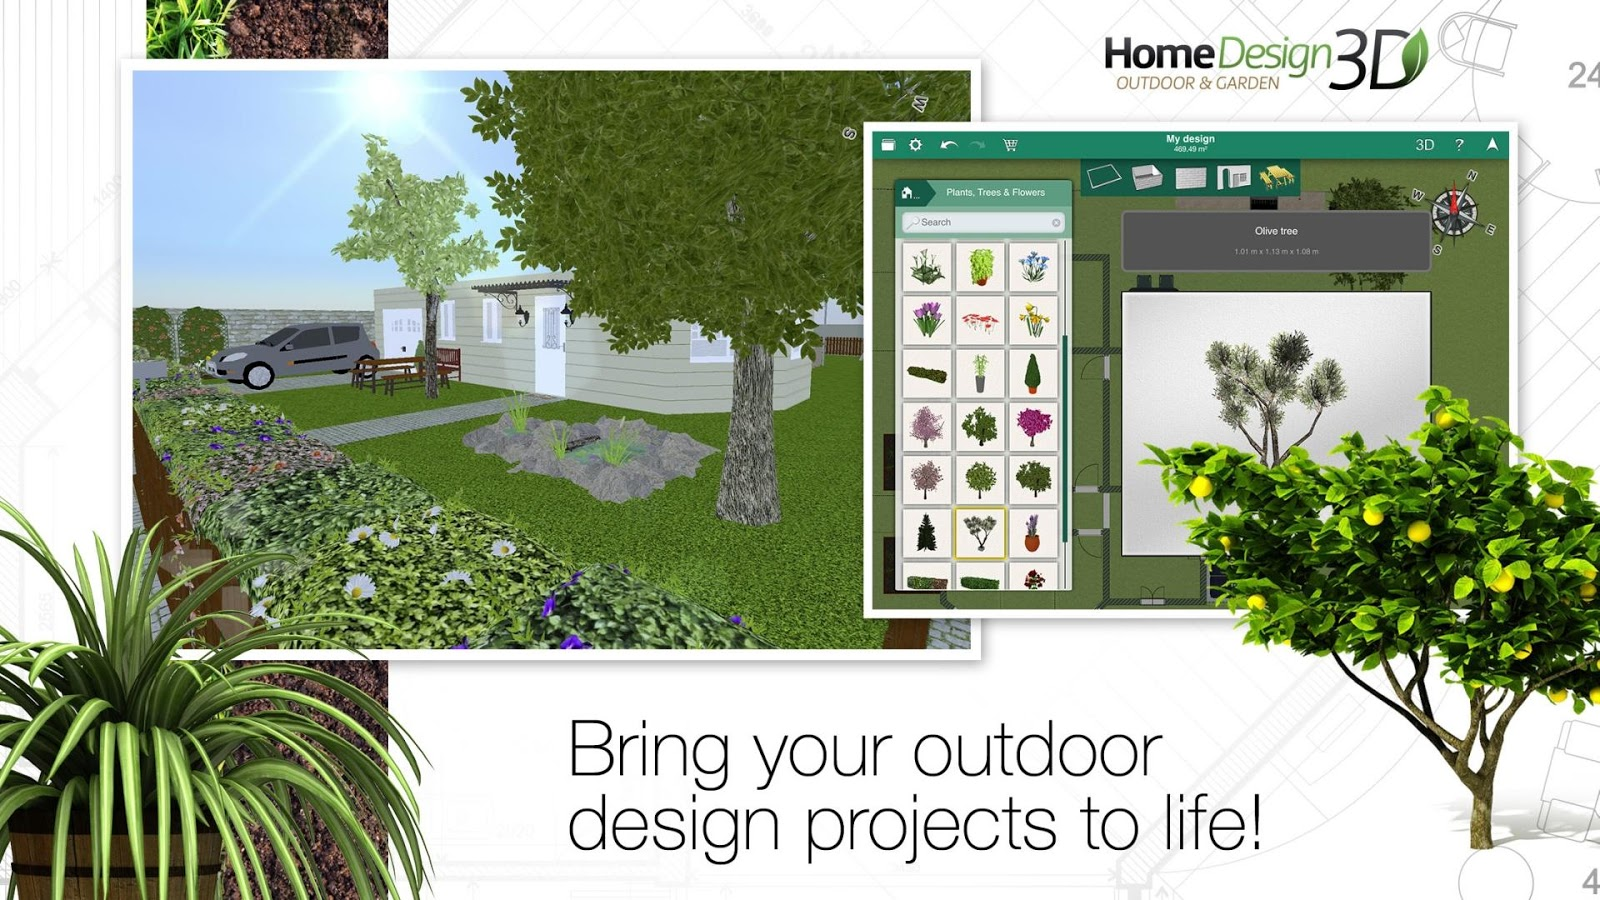 Home Design 3D Outdoor/Garden Slides Into The Play Store For All Your Deck,  Pool, And Open Air Planning Needs